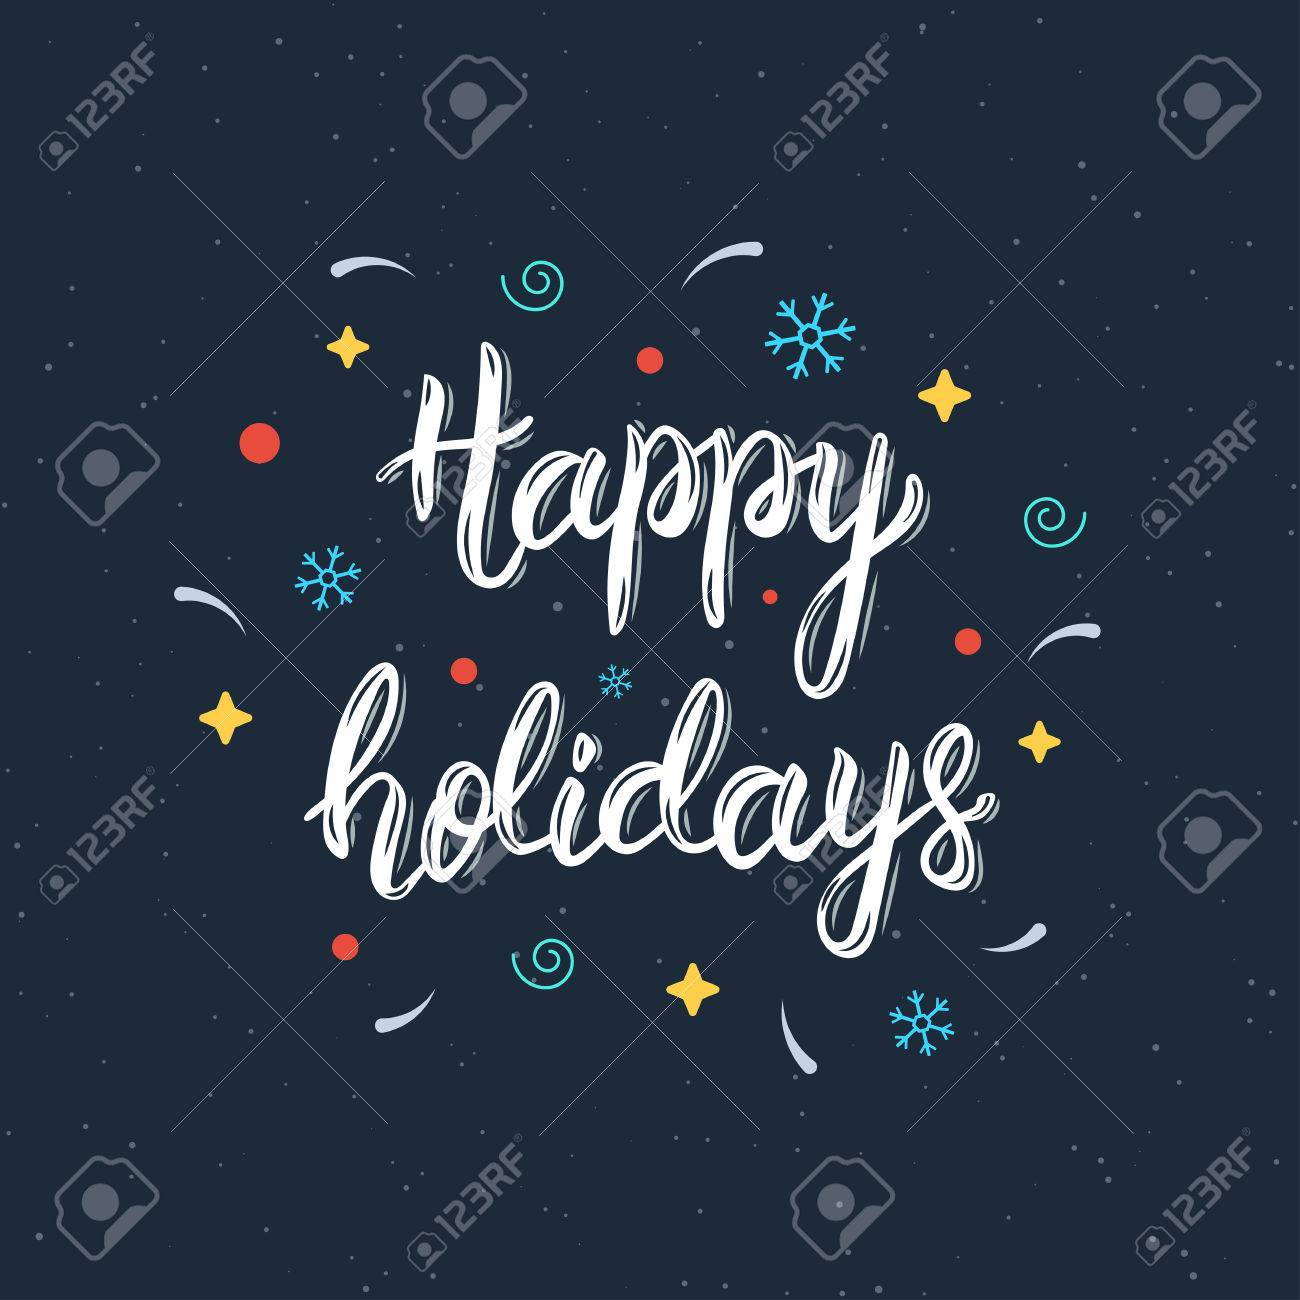 Happy Holidays Hand Written Brush Lettering Inscription With